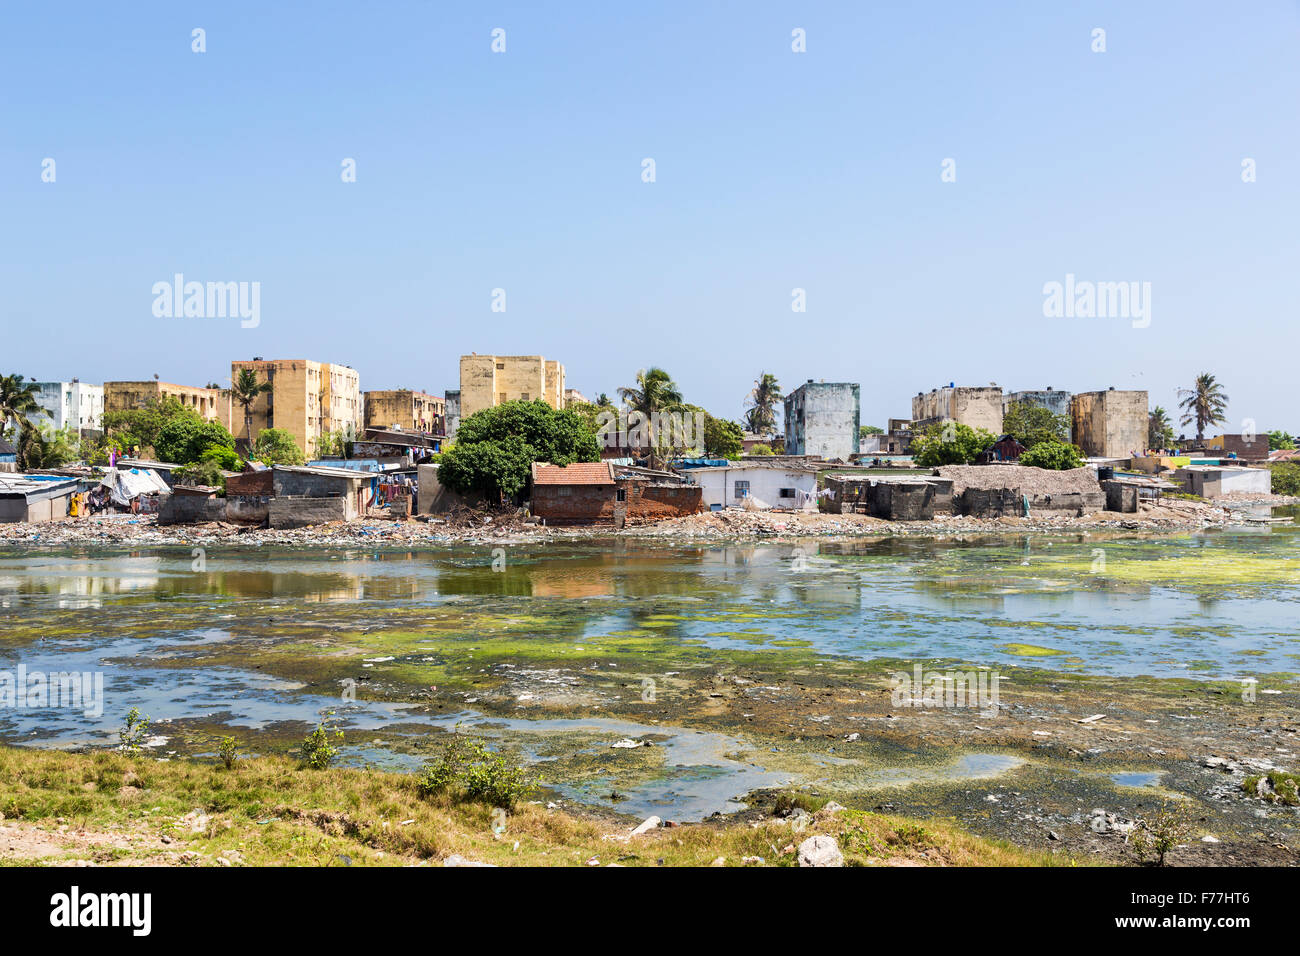 Third world poverty lifestyle: Apartment blocks, riverside shacks, slums on the banks of the polluted Adyar River - Stock Image